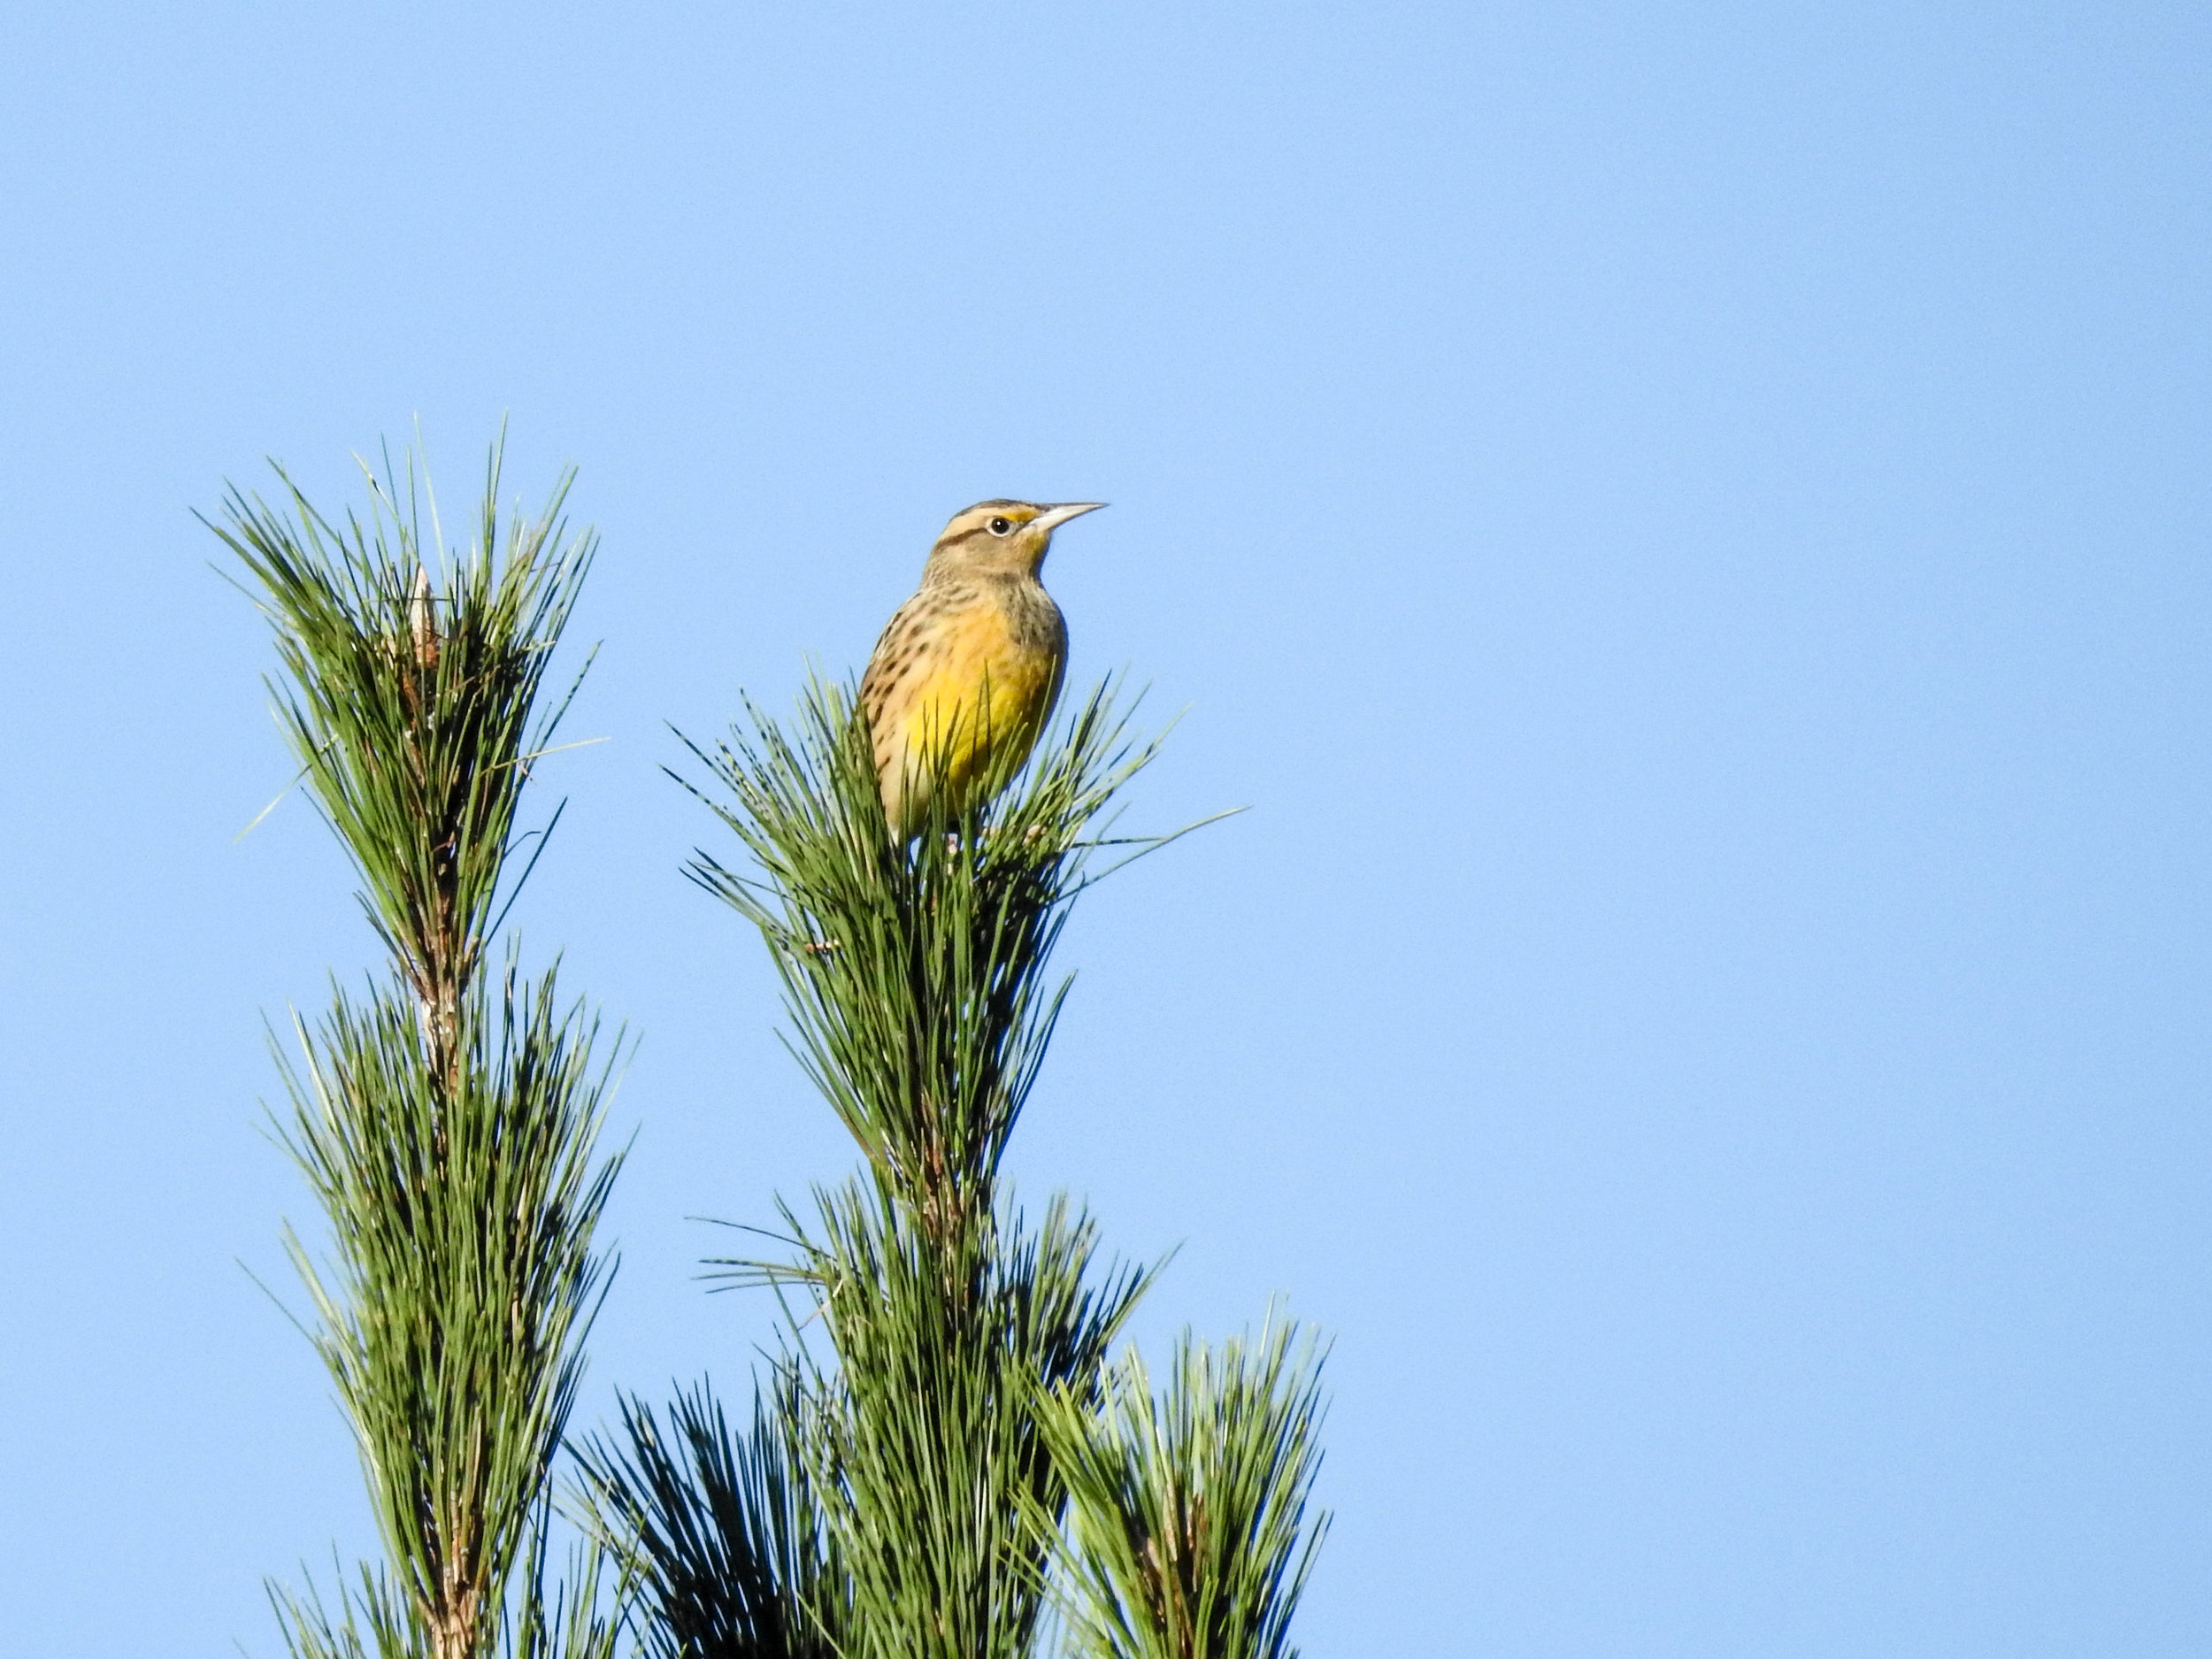 Eastern Meadowlark, October 18, 2018